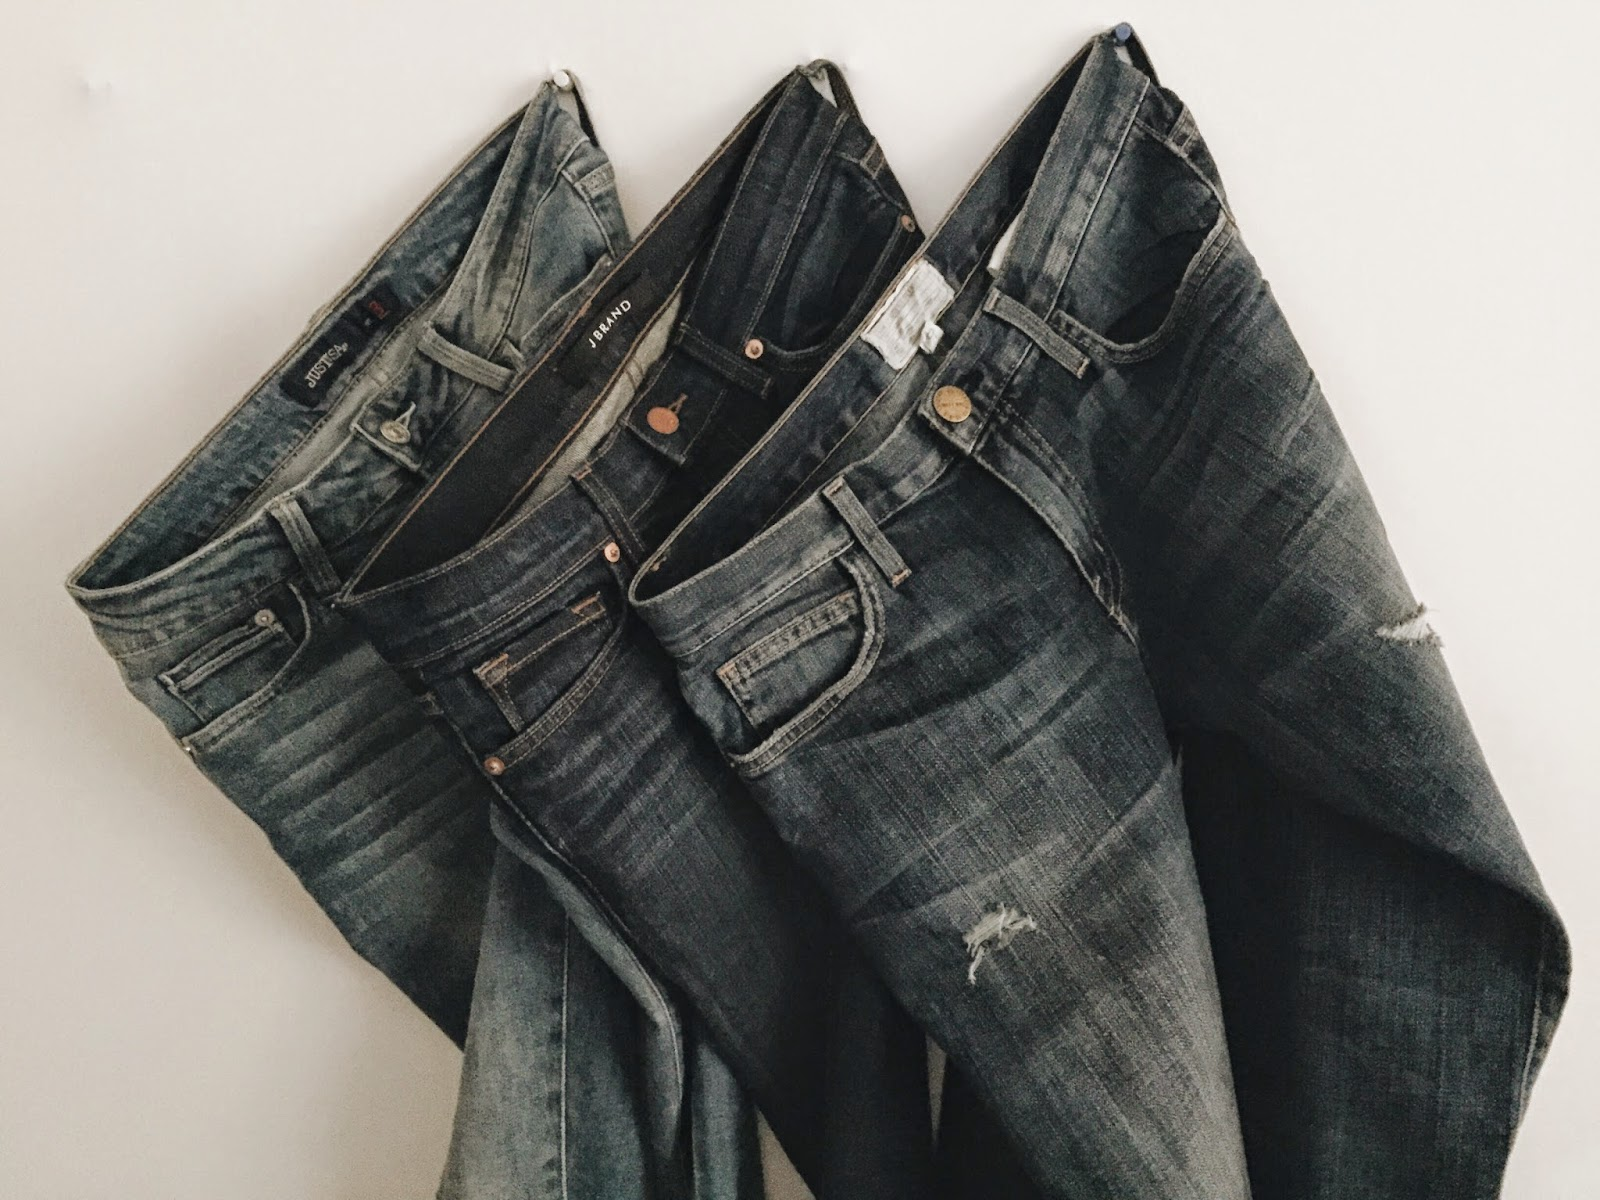 Blue Jeans: Boyfriend Jeans - J Brand Skinny Jeans, Current Elliot Love Destroyed